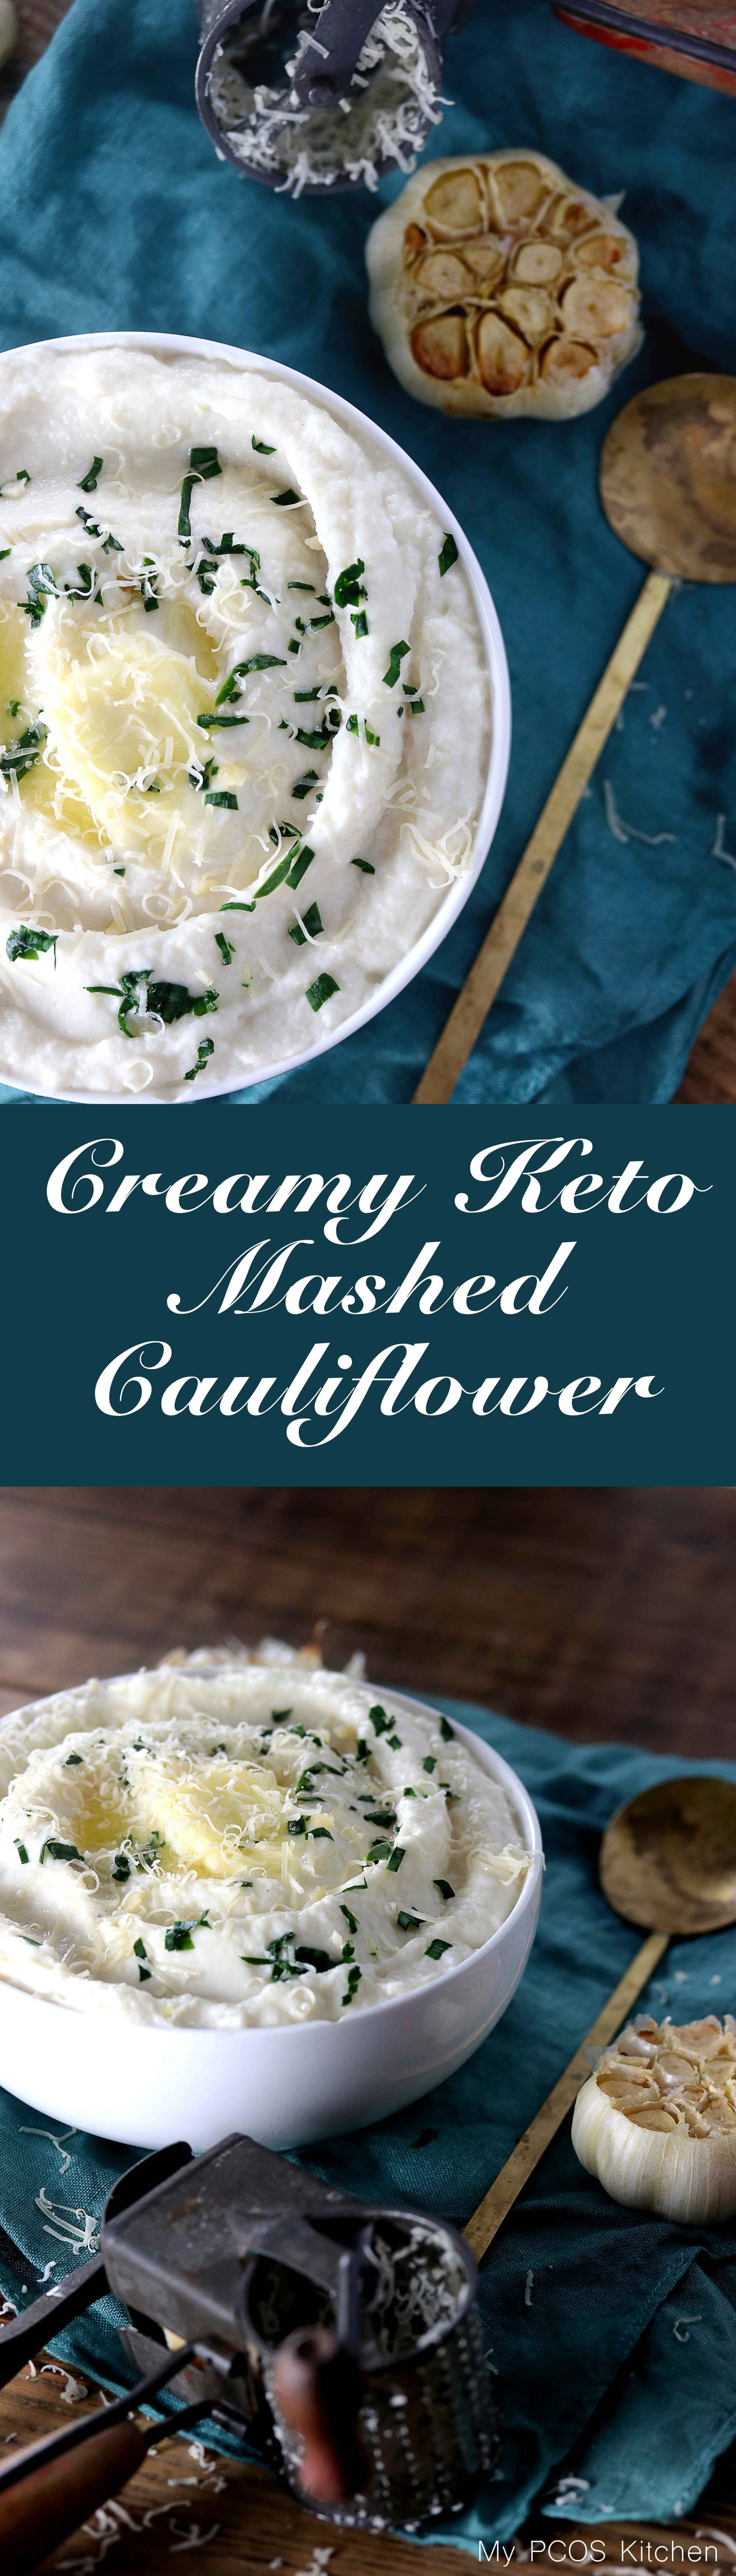 My PCOS Kitchen - Creamy Keto Mashed Cauliflower - This mashed fauxtato is so creamy, buttery and filled with roasted garlic! You won't even miss potatoes with this!